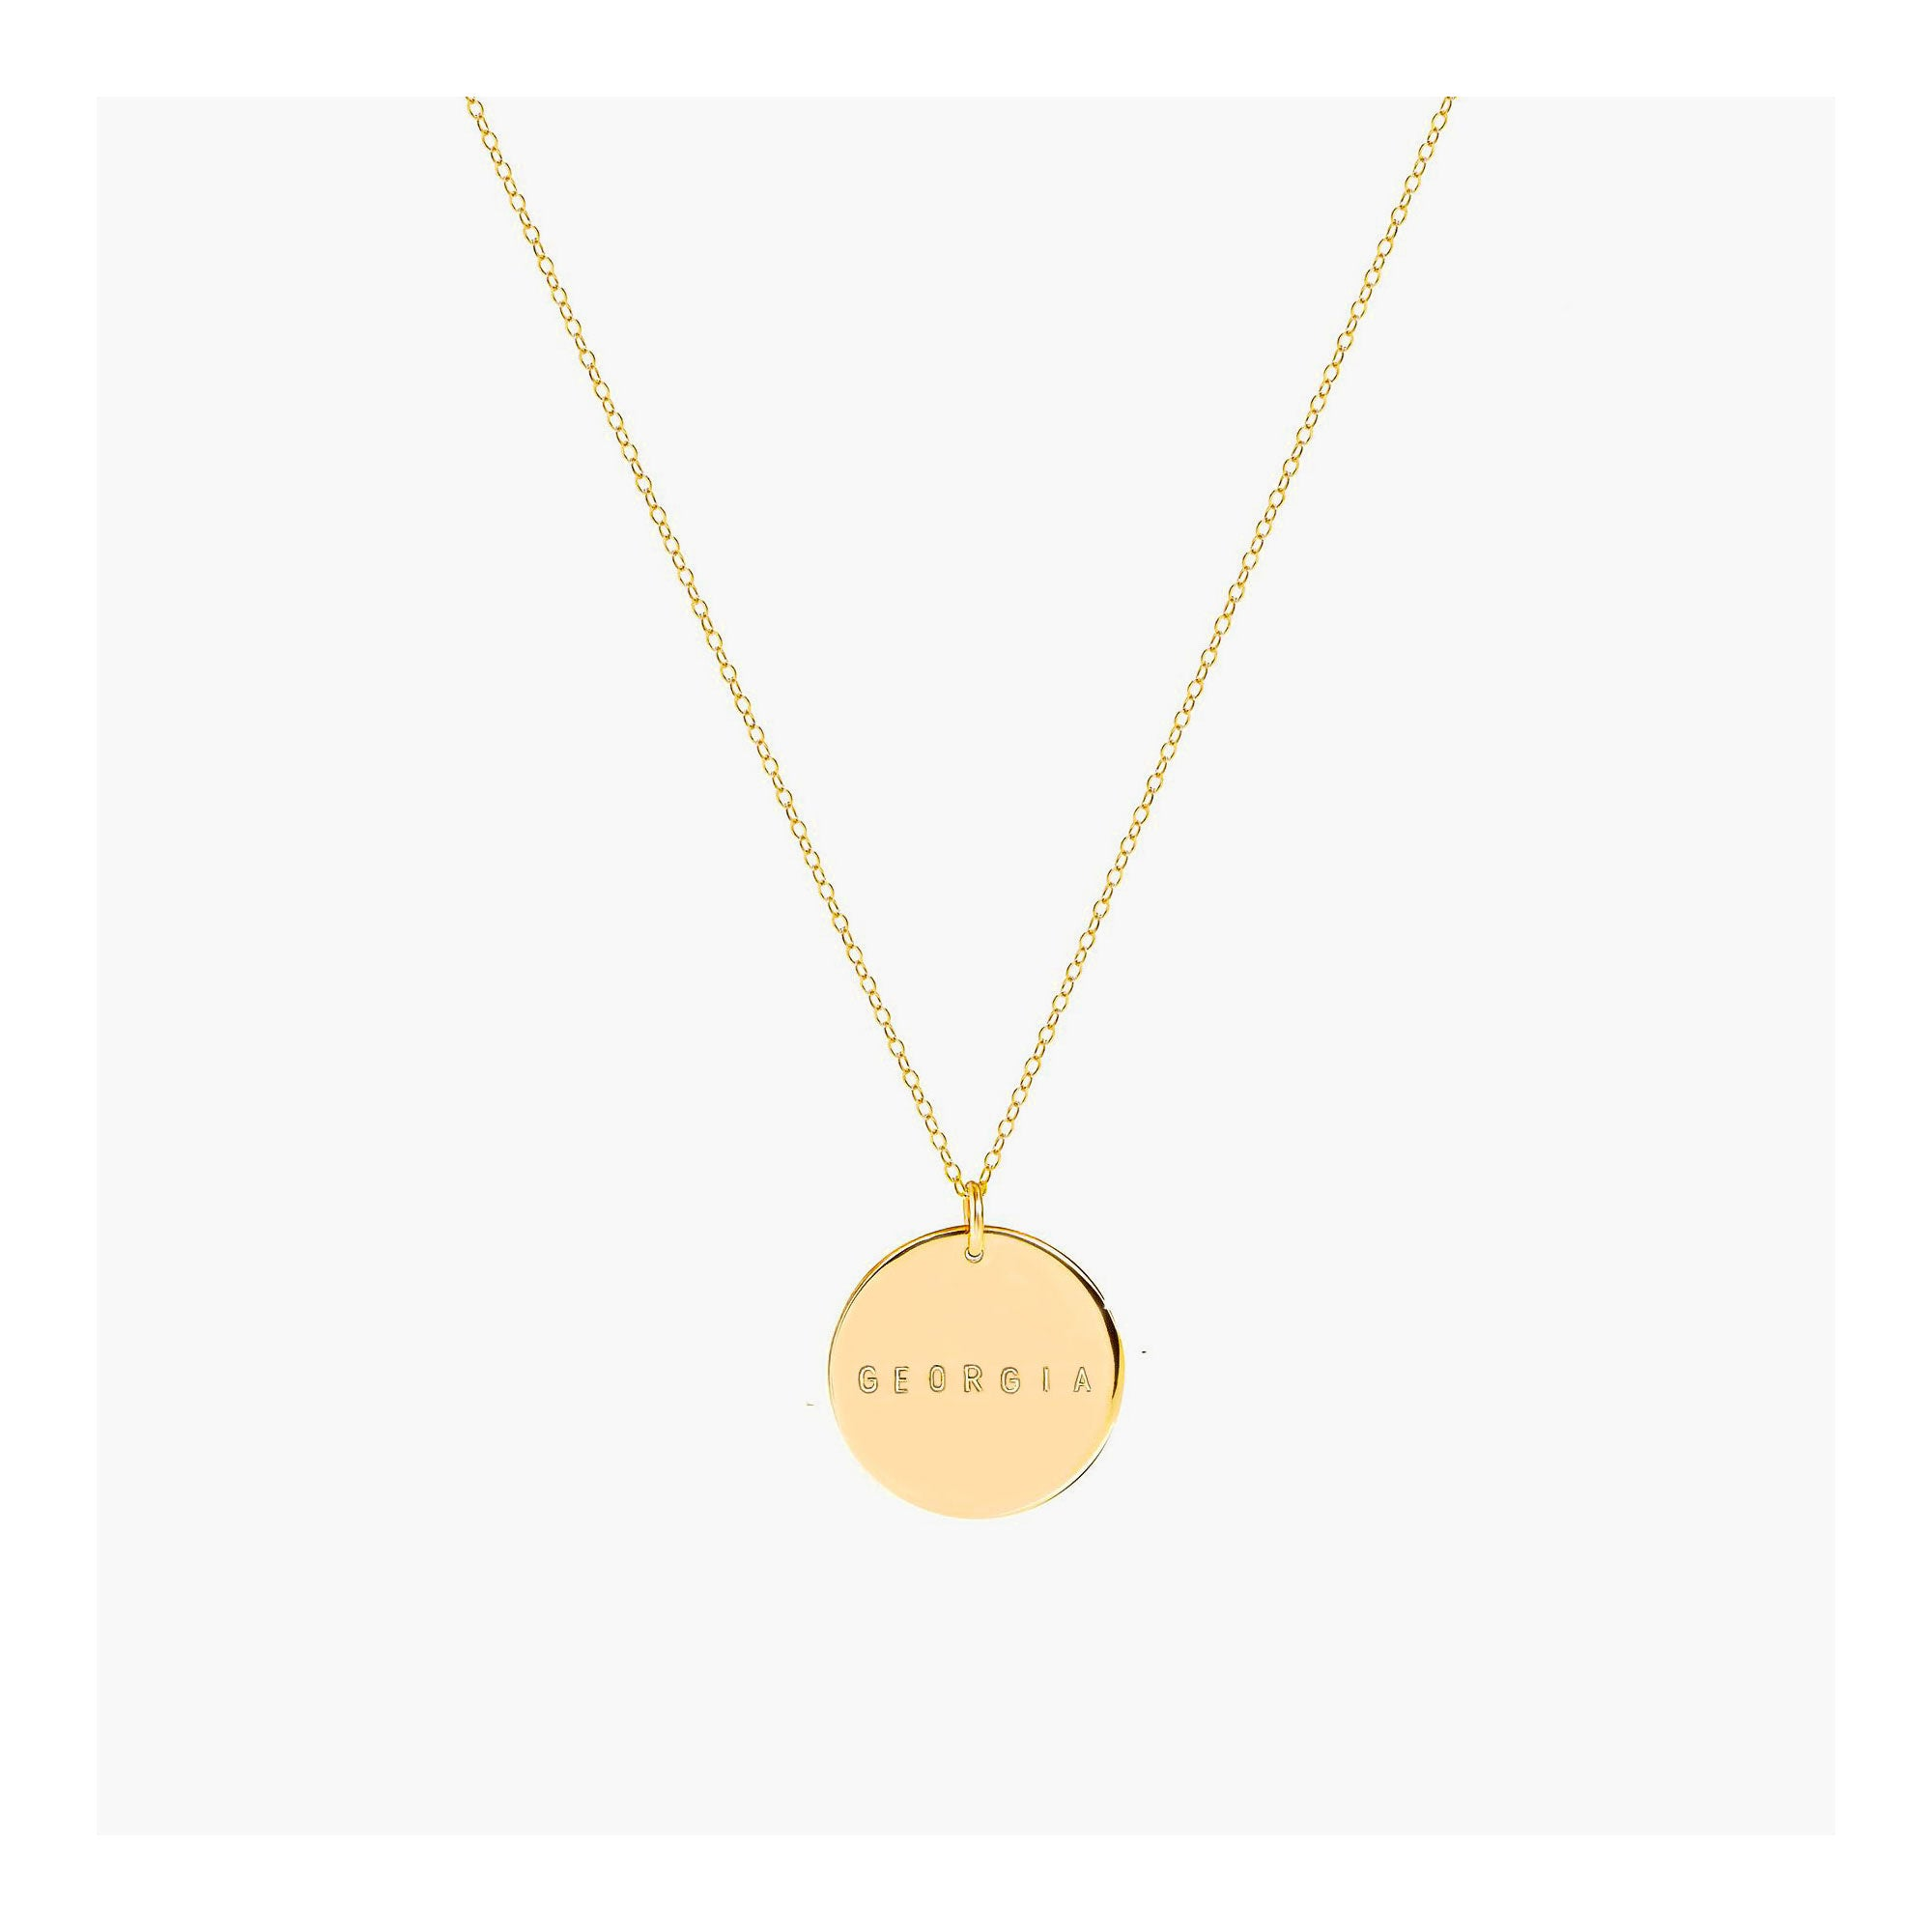 Personalized Pendant Necklace | Gold initial necklace | Engraved pendant necklace